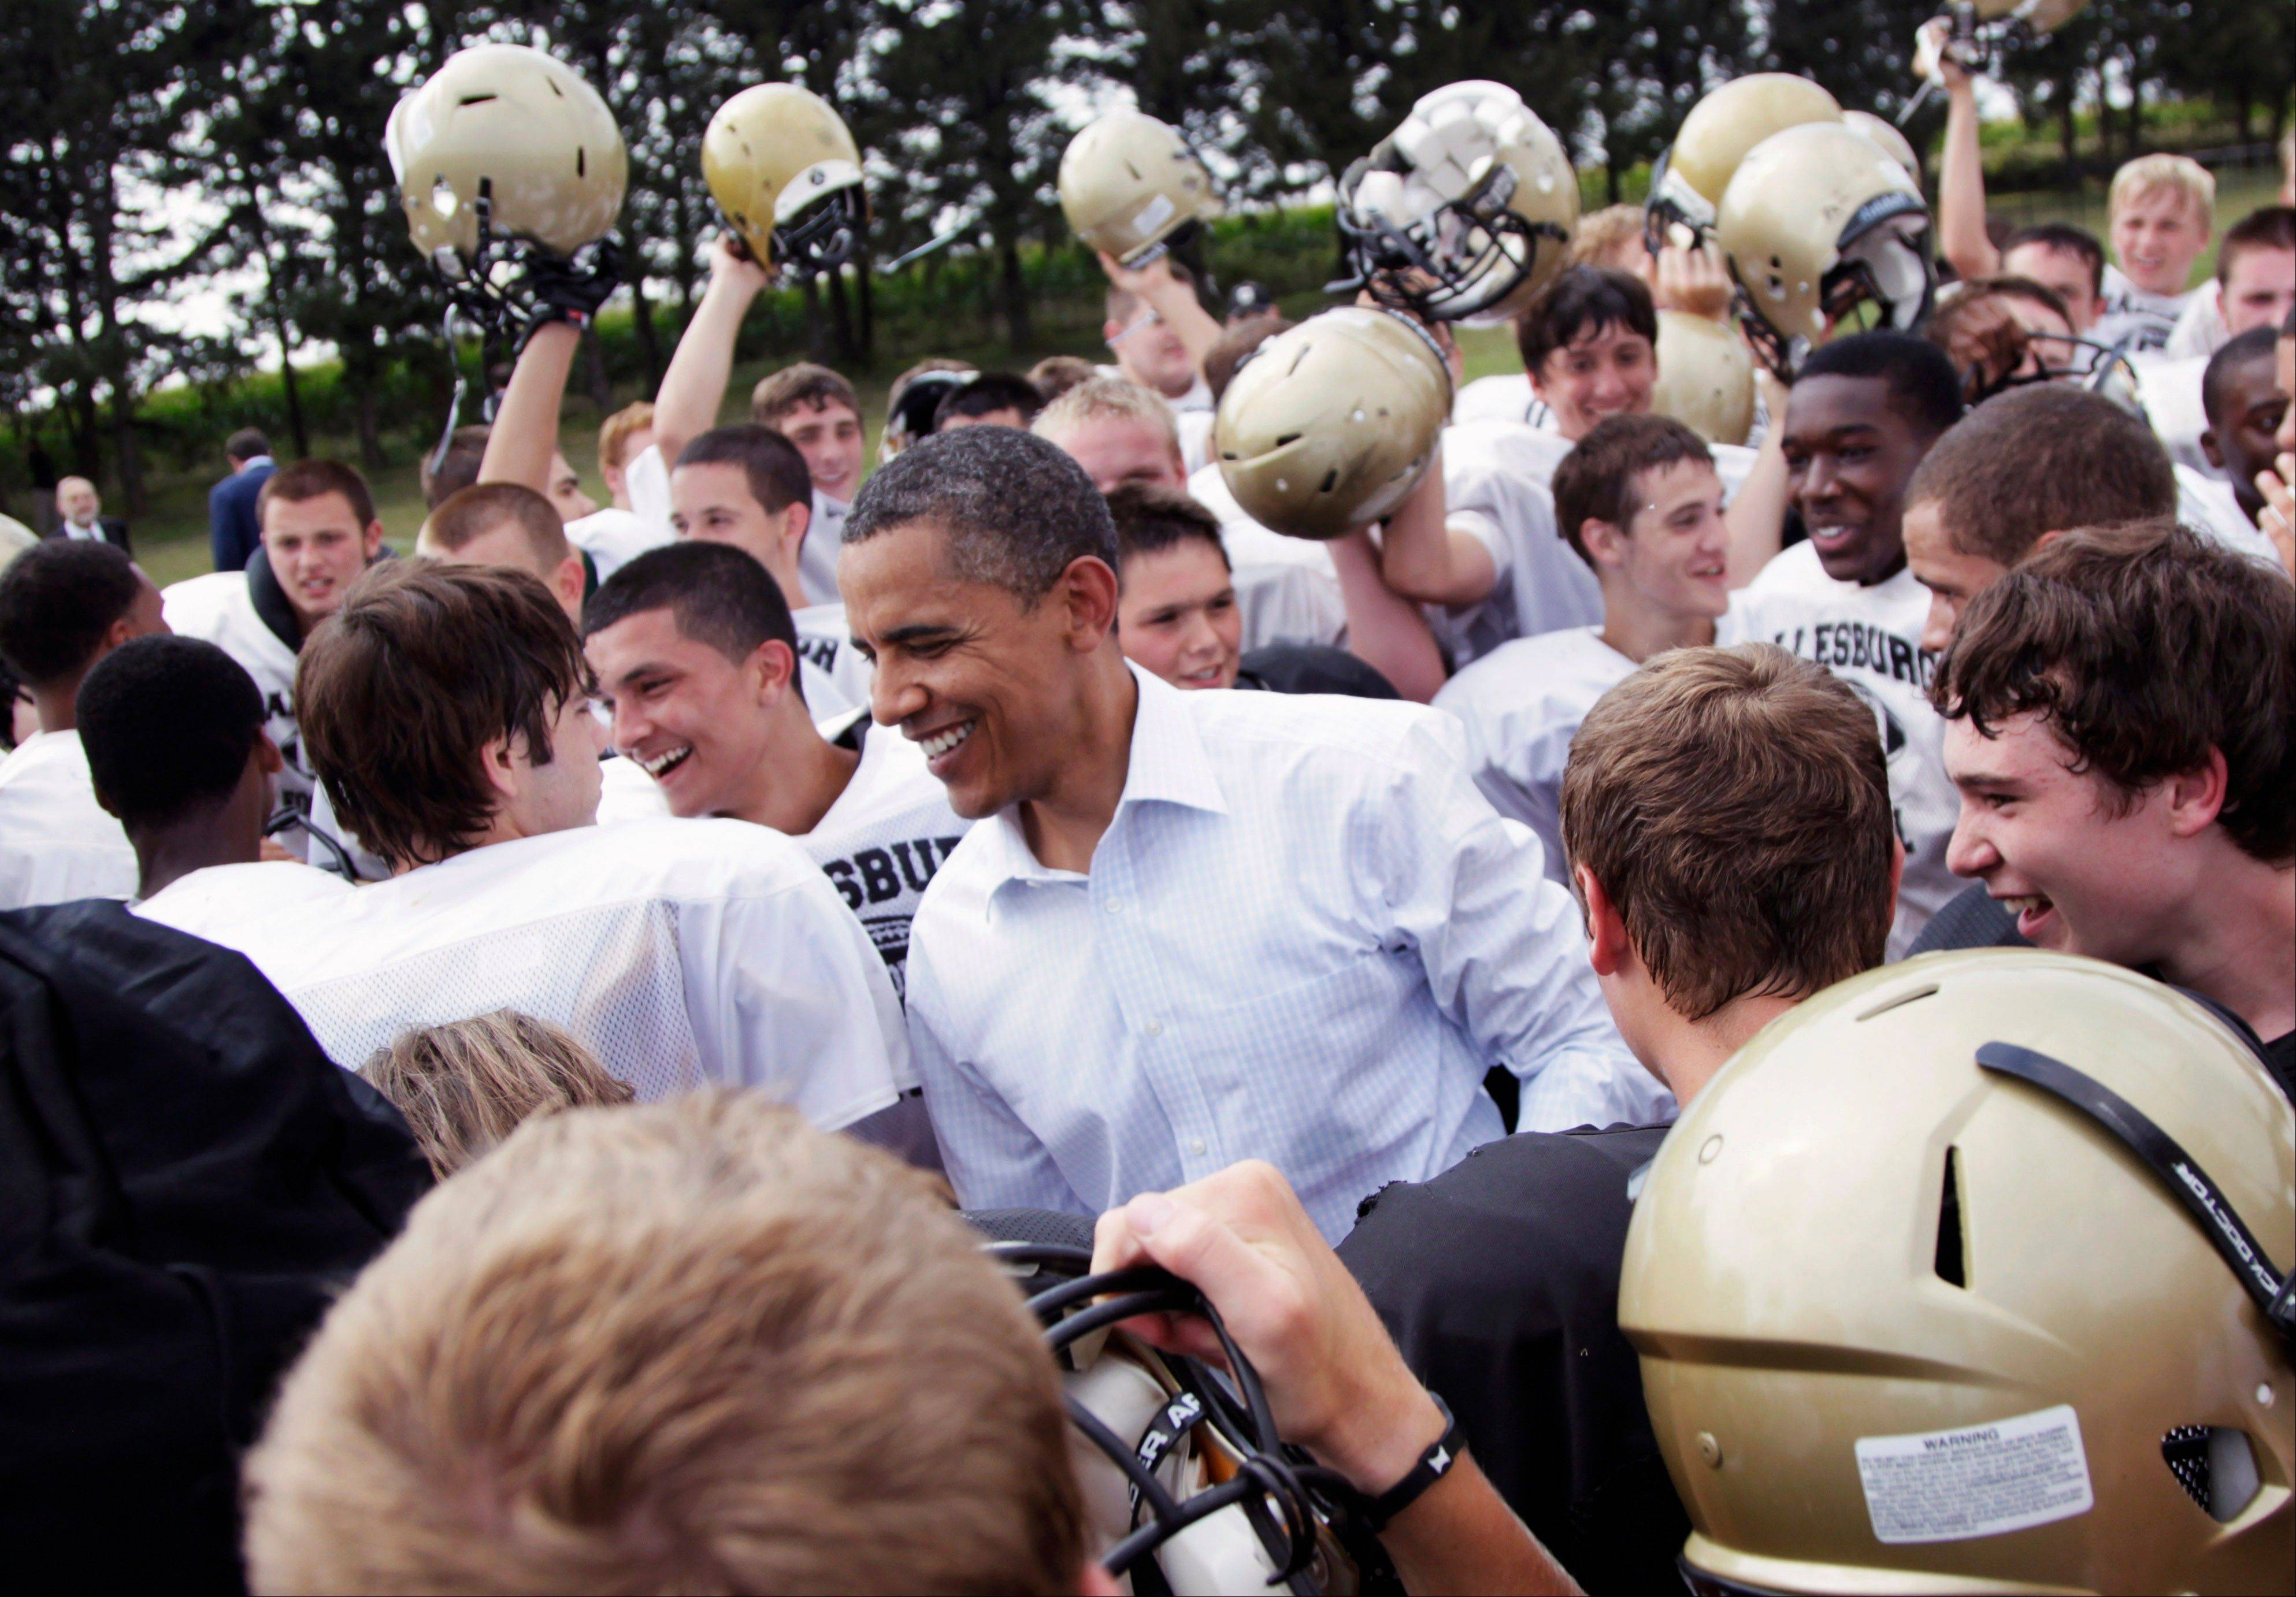 Associated PressIn this Aug. 17, 2011 photo, President Barack Obama huddles with the Galesburg High School football team in Galesburg during a three-day economic bus tour.